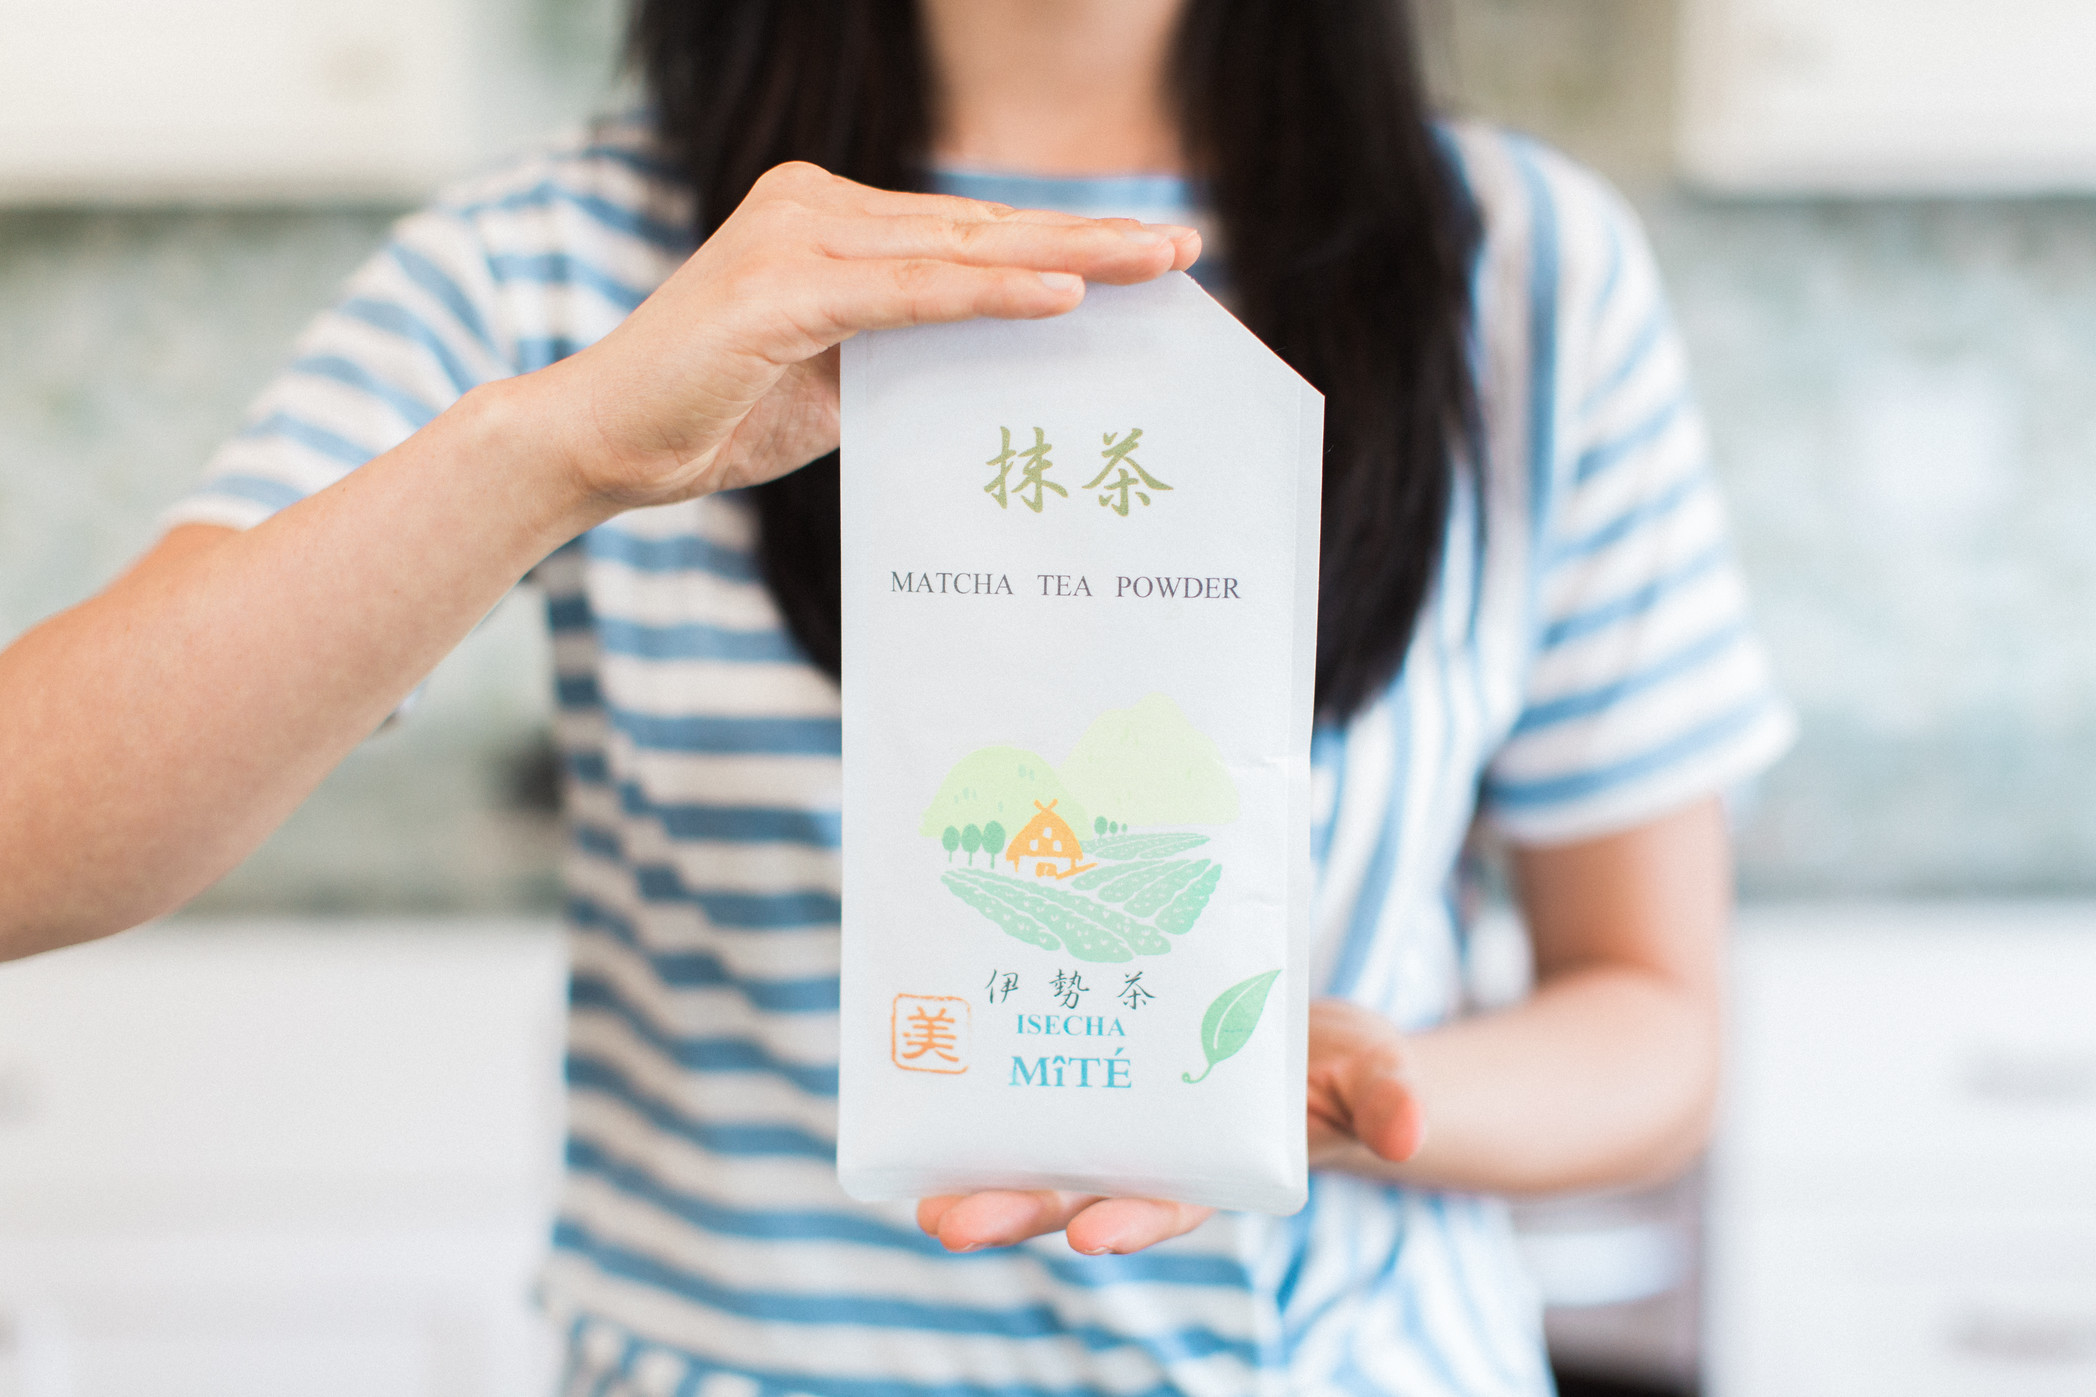 Always use a quality Matcha Green Tea powder. It makes all the difference.